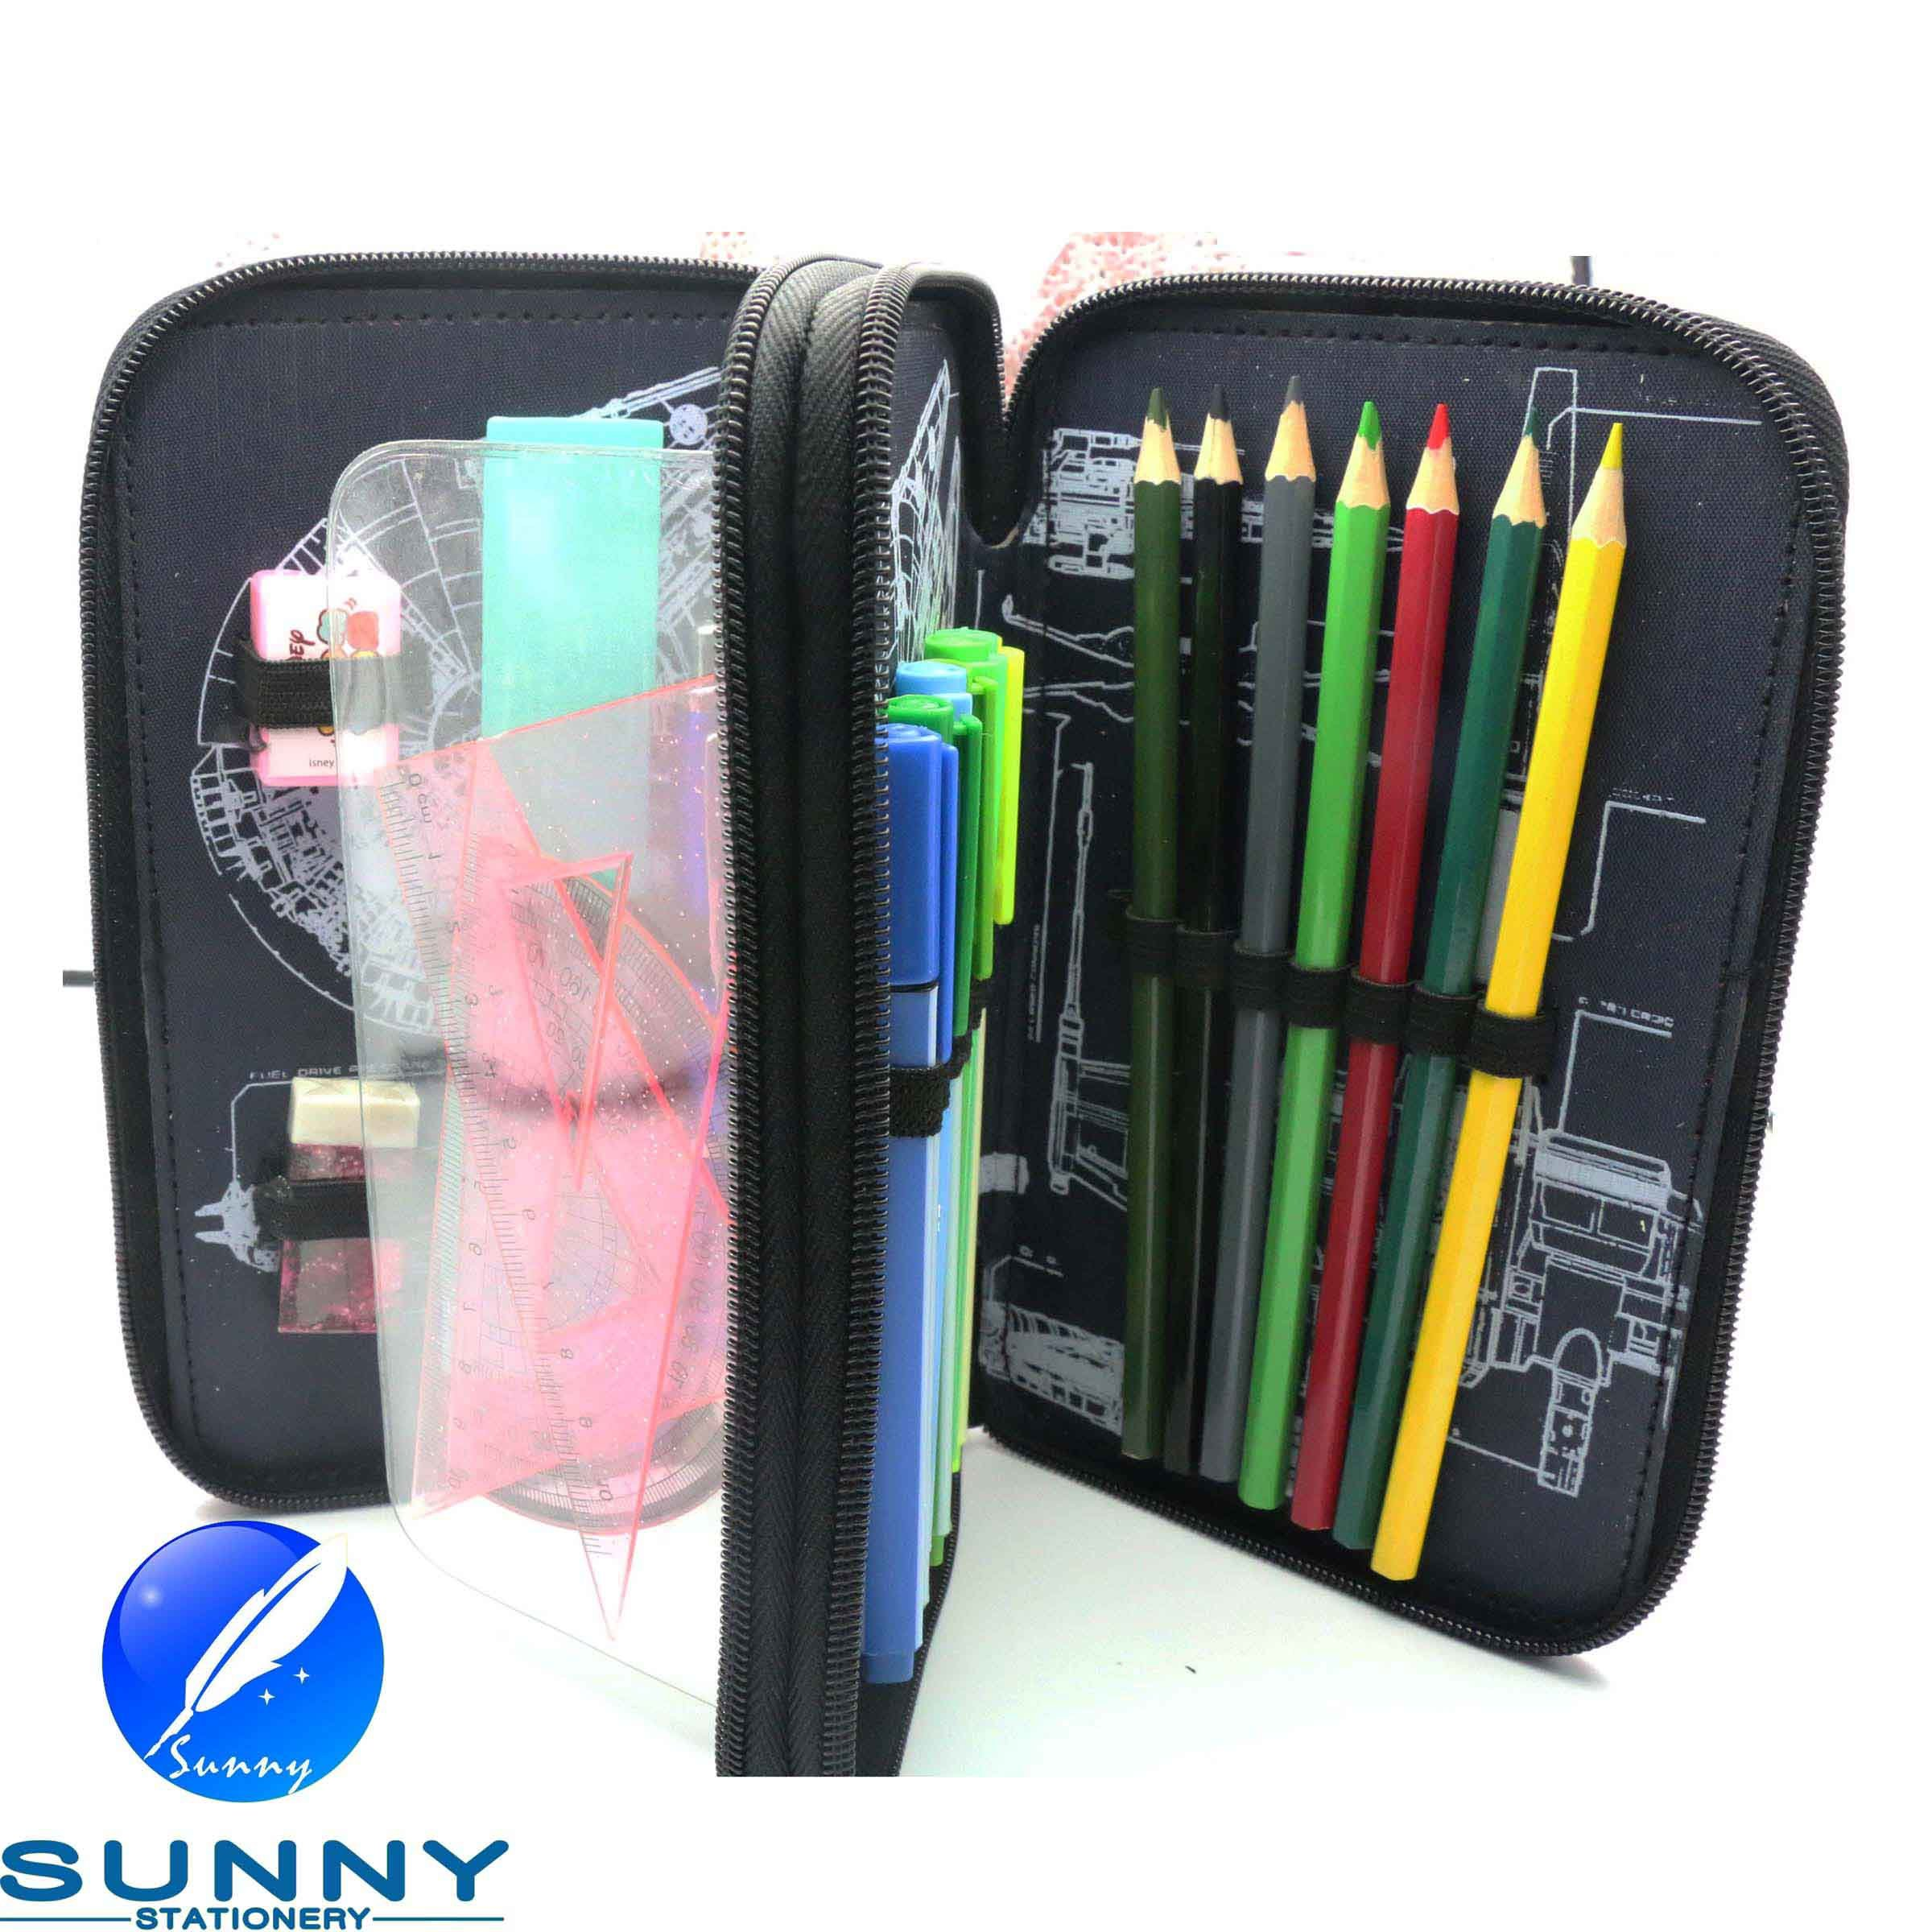 2 Tier Stationery Case for Children, Promotion Stationery Set